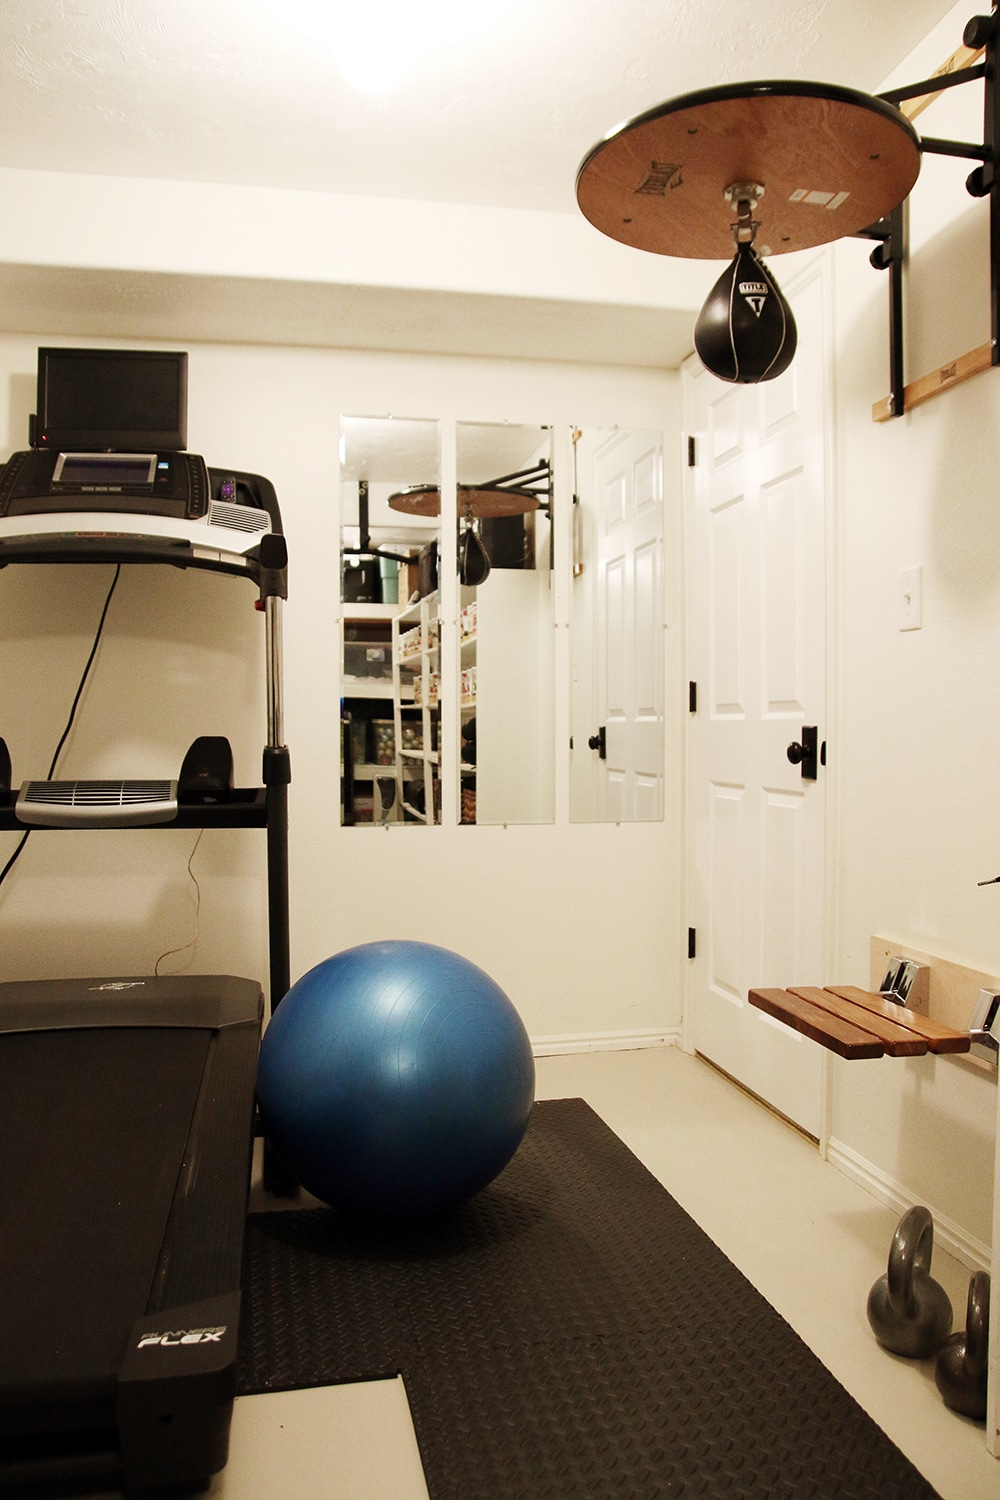 Our Little (Really Little) Home Gym - Chris Loves Julia